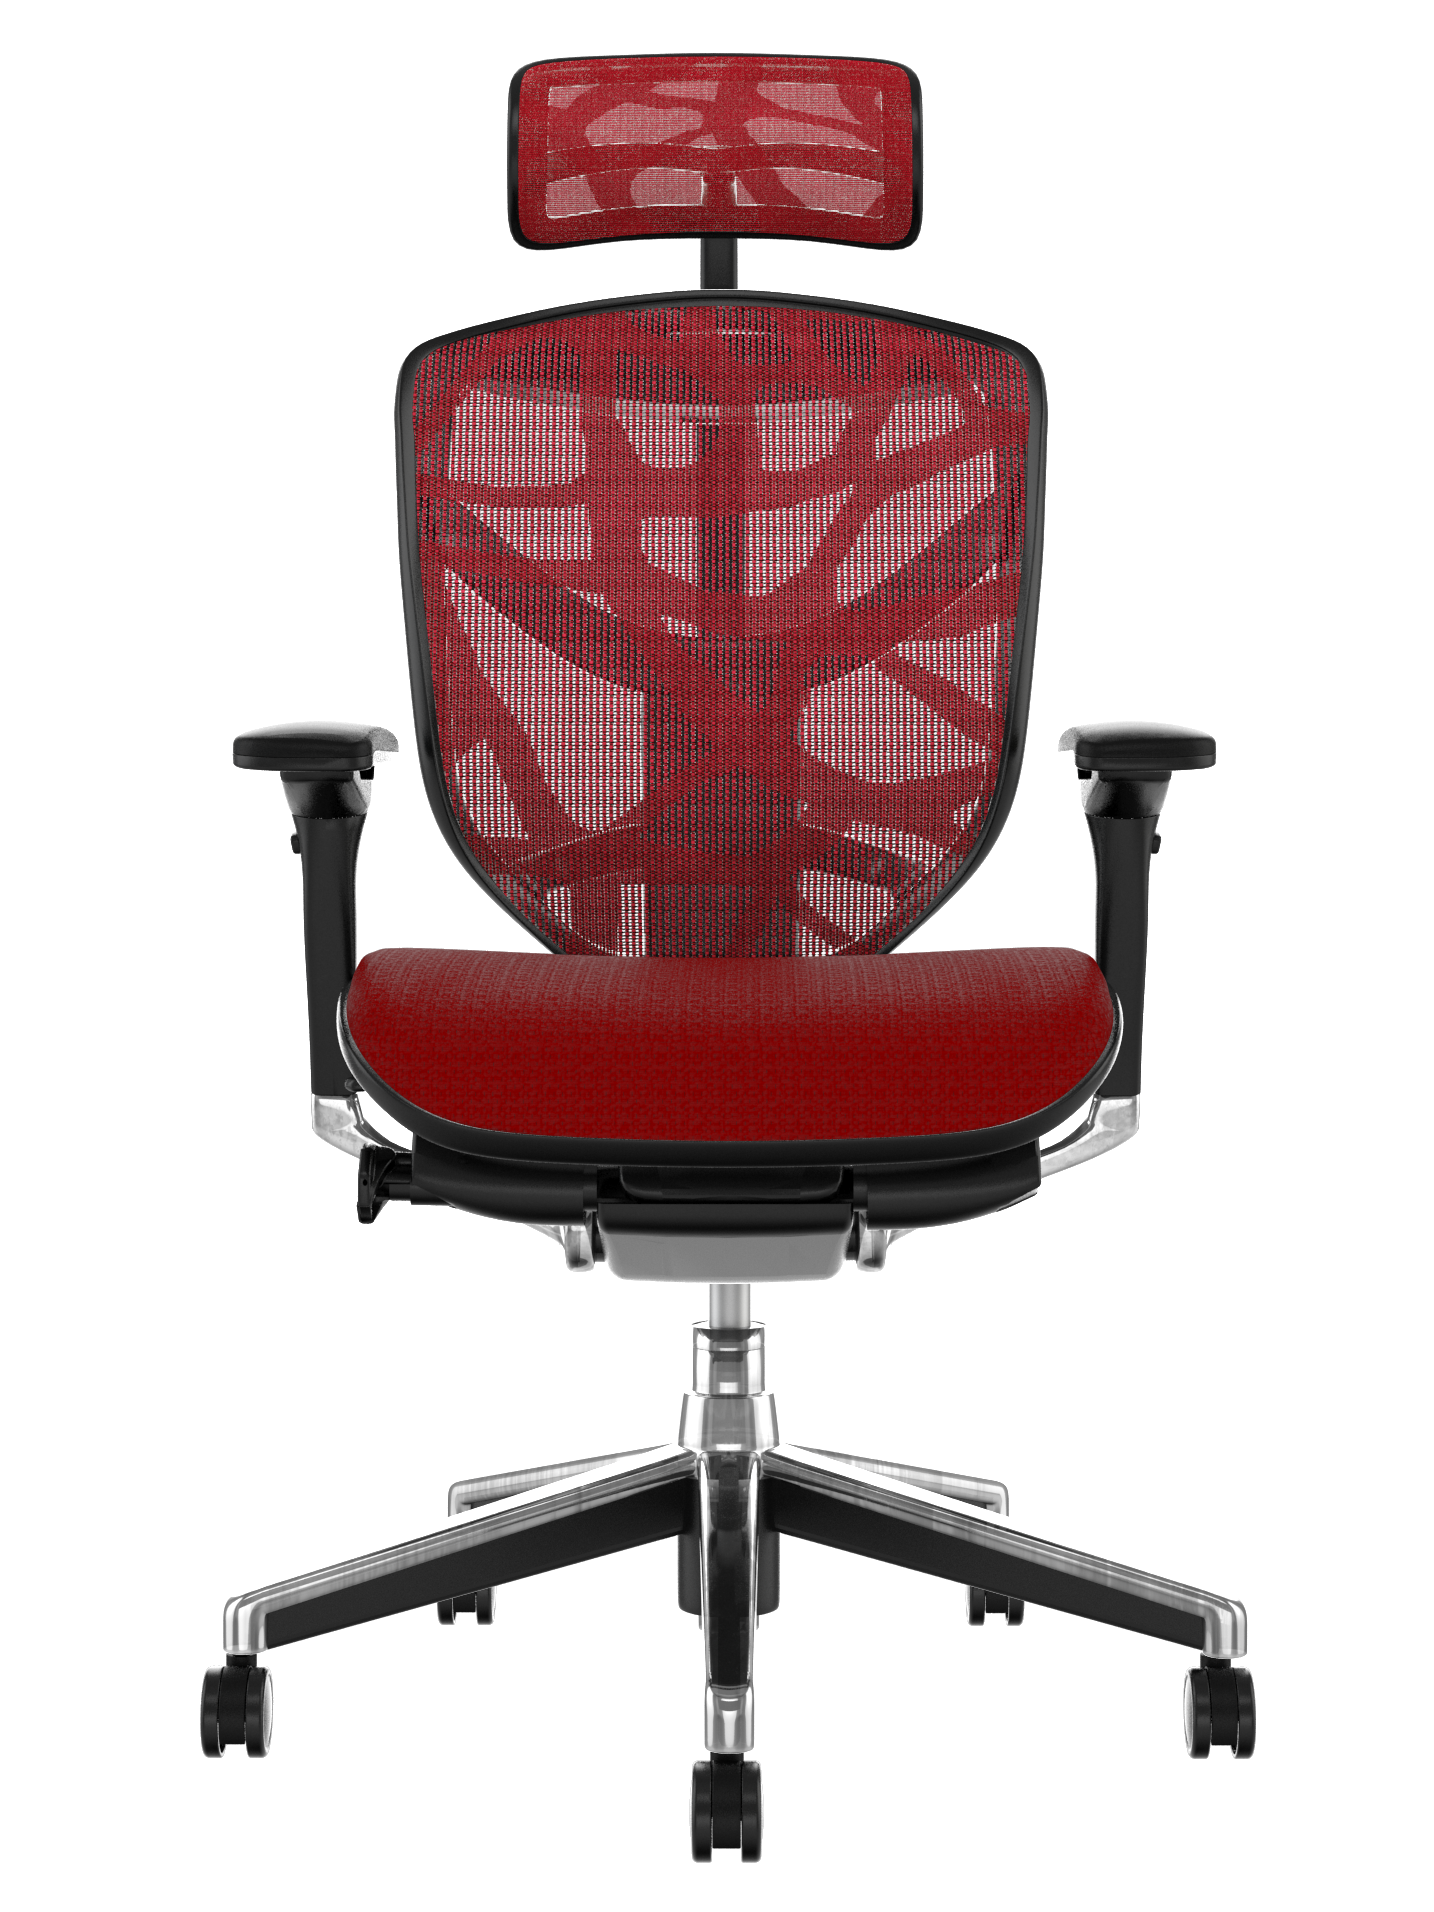 comfort office chair. Project Mirus · Enjoy Elite Comfort Office Chair